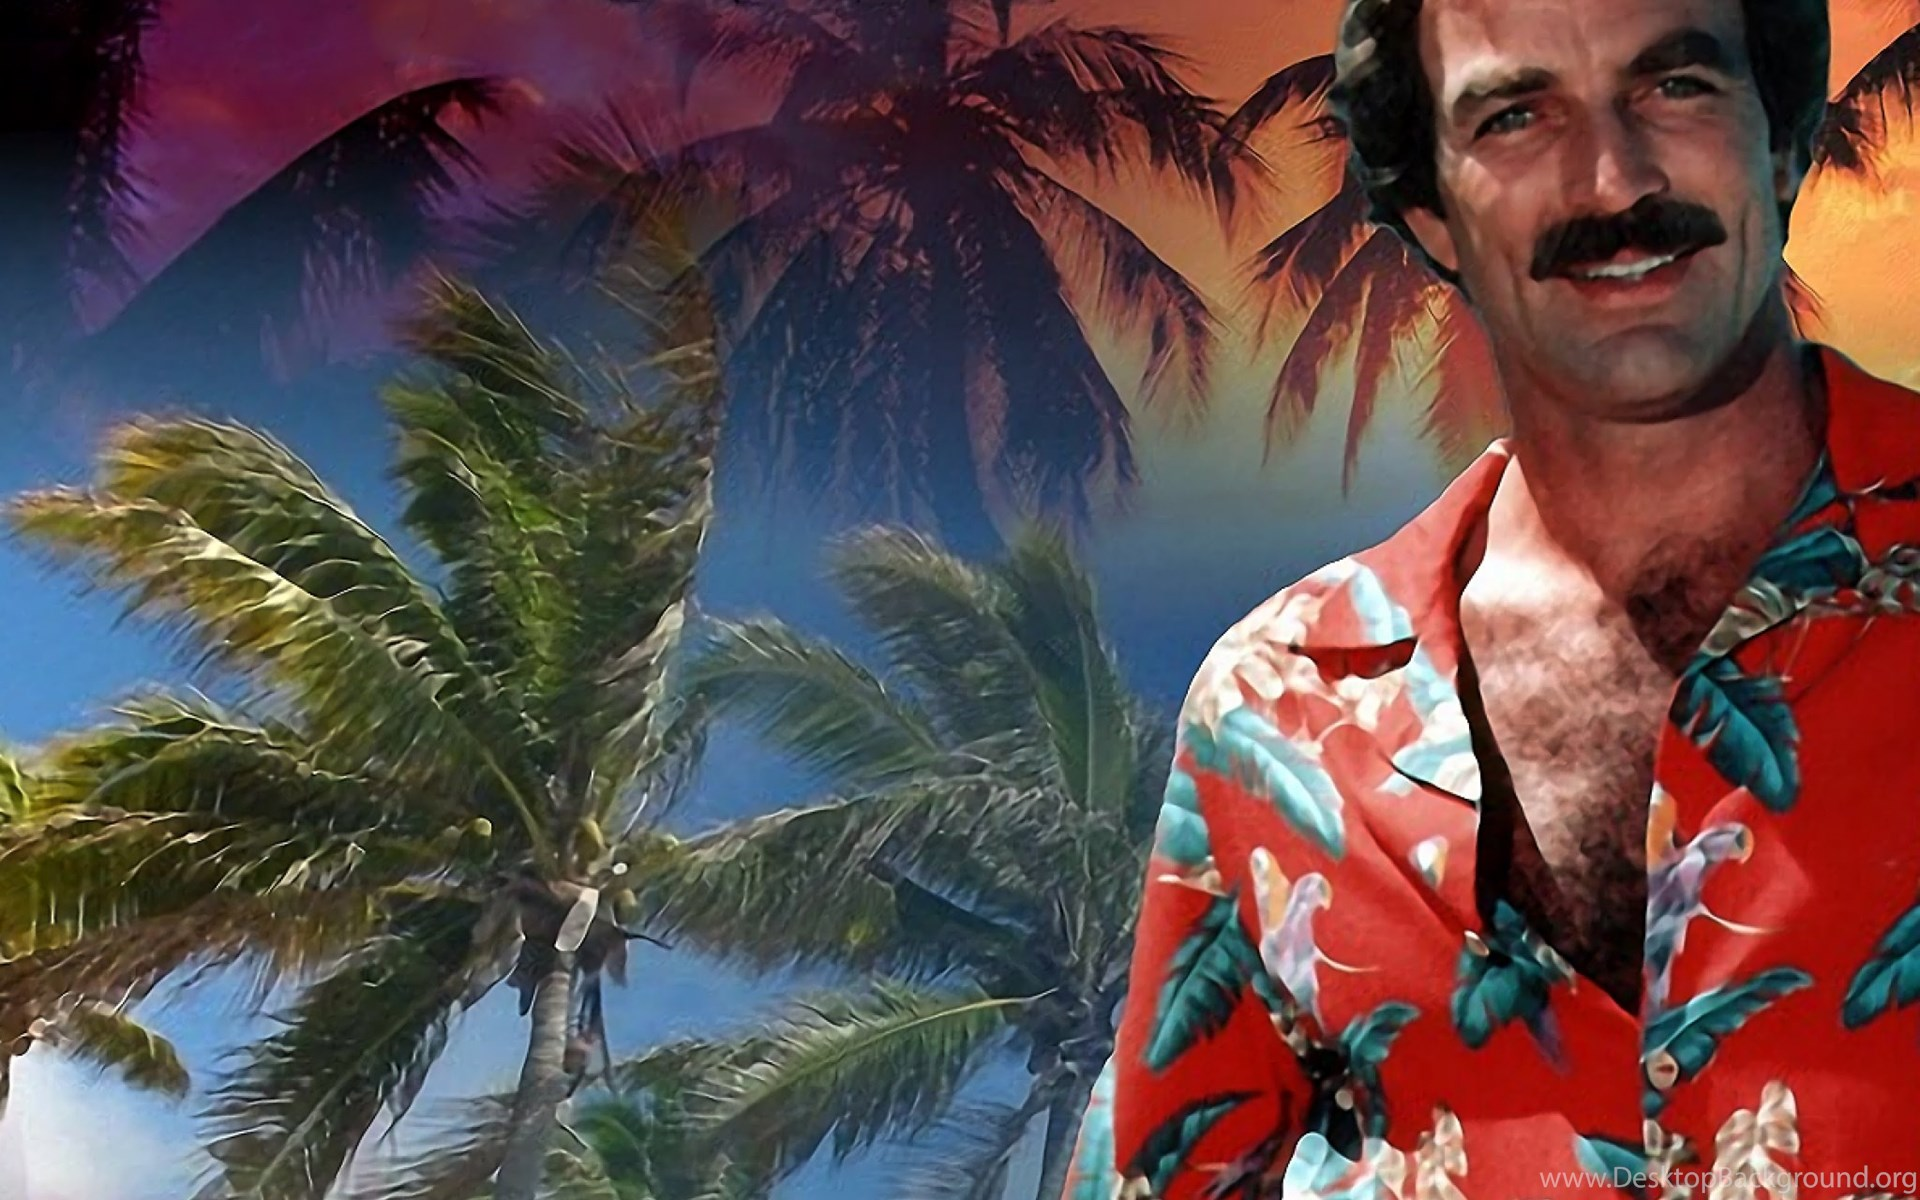 Iphone 7 Wallpaper Size Magnum P I Ipad 3 4 Amp Air Wallpapers Desktop Background